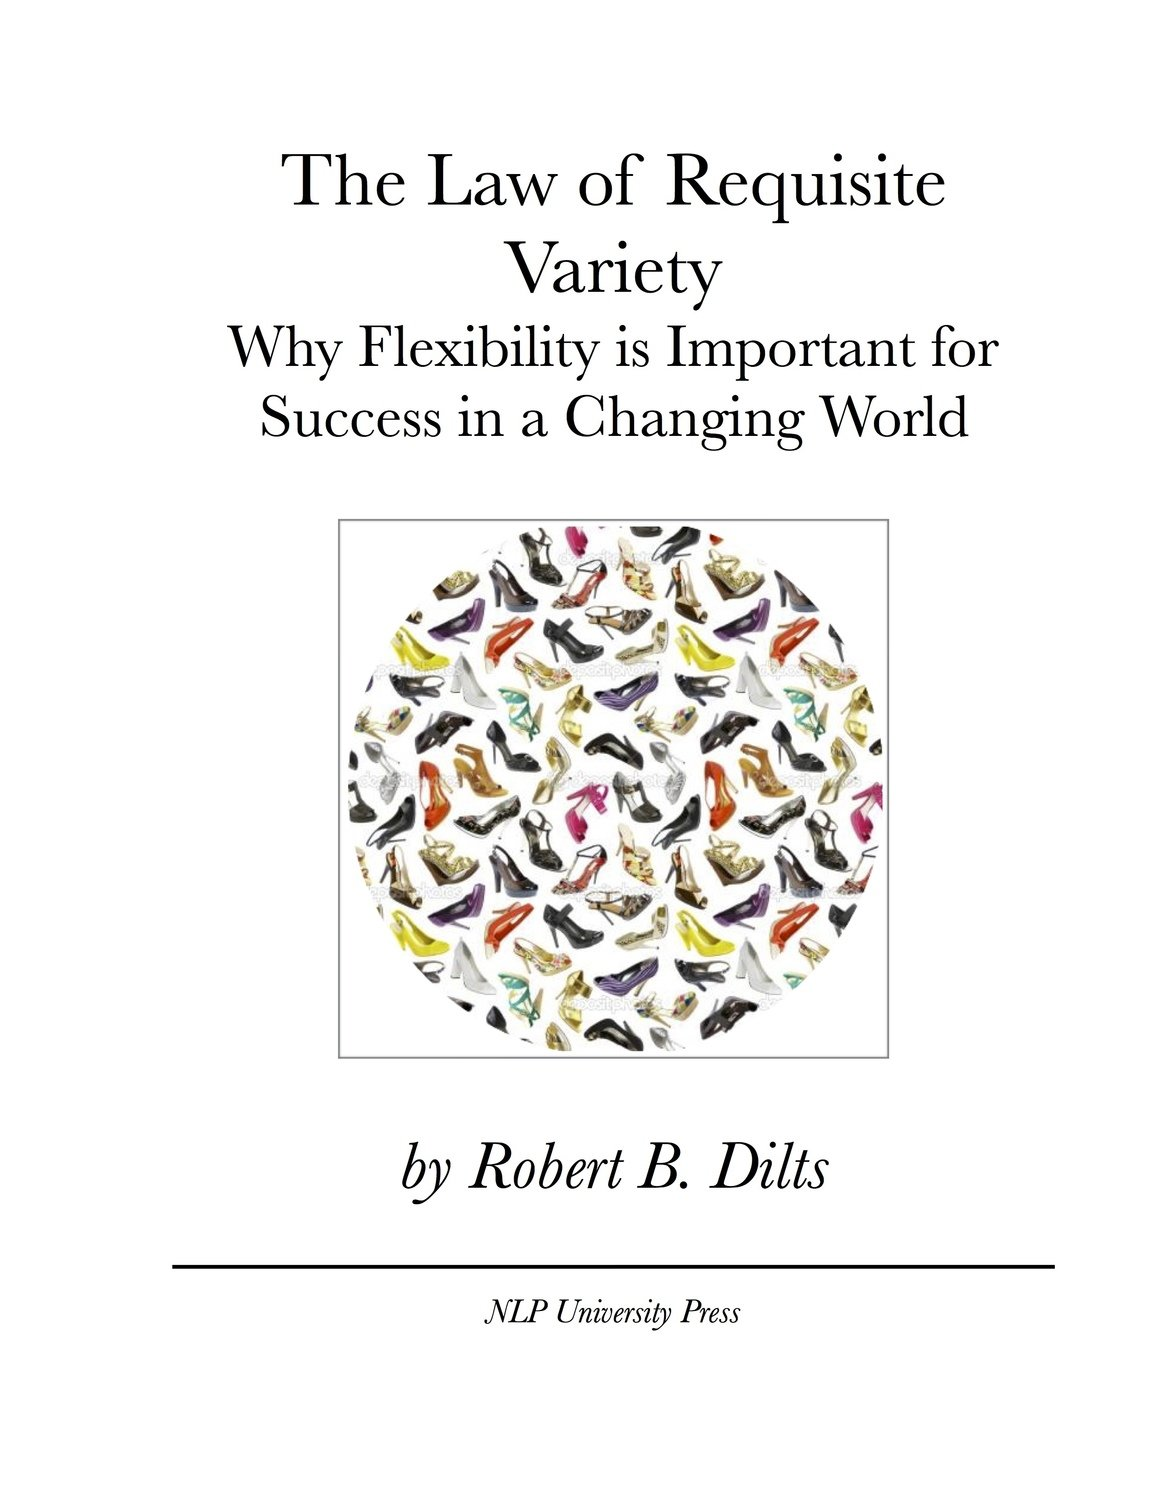 The Law of Requisite Variety: Why Flexibility is Important for Success in a Changing World [Booklet]